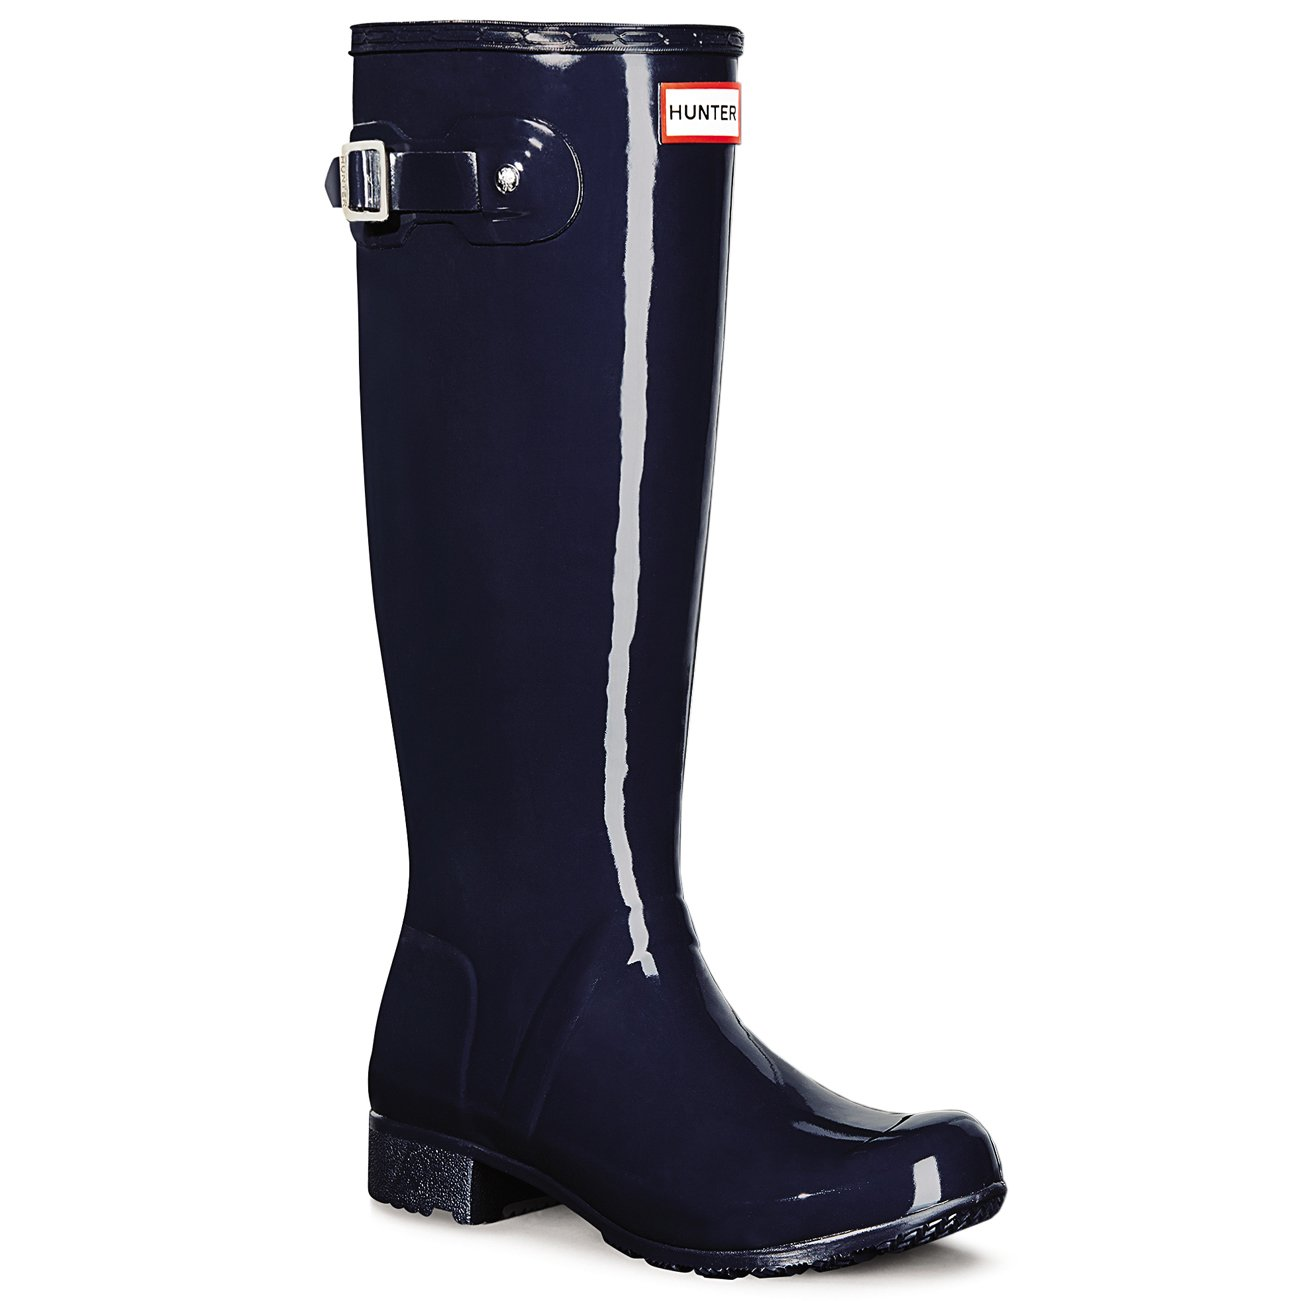 Hunter Womens Original Tour Gloss B00WPSZFEQ 10 B(M) US|Navy